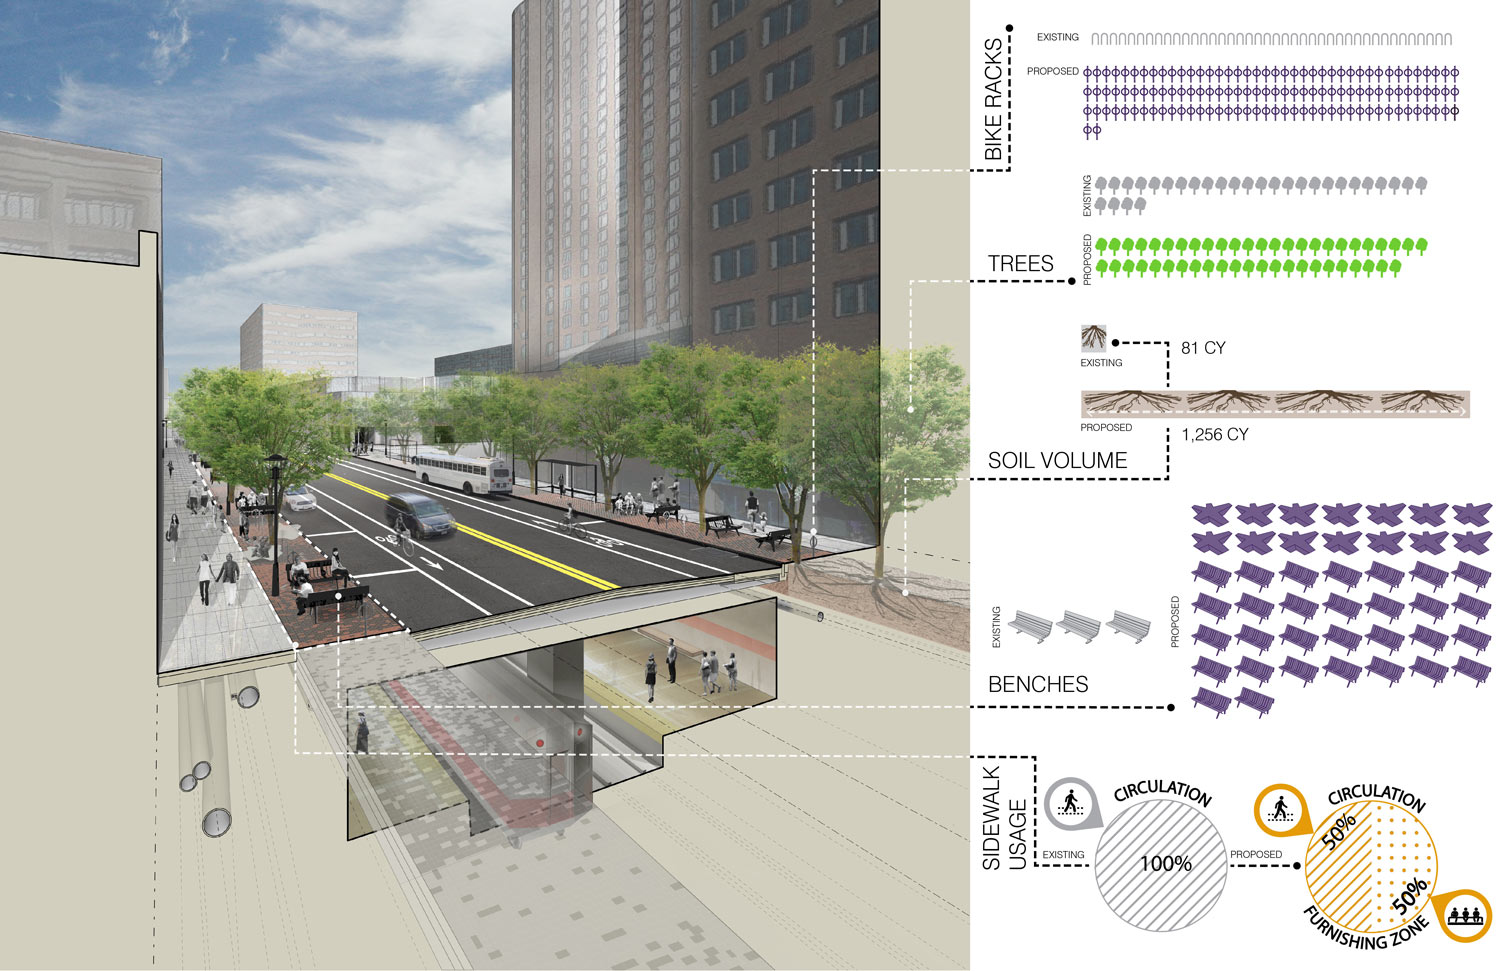 Kendall-Square_landscape-architecture-site-improvements-diagram_Klopfer-Martin.jpg